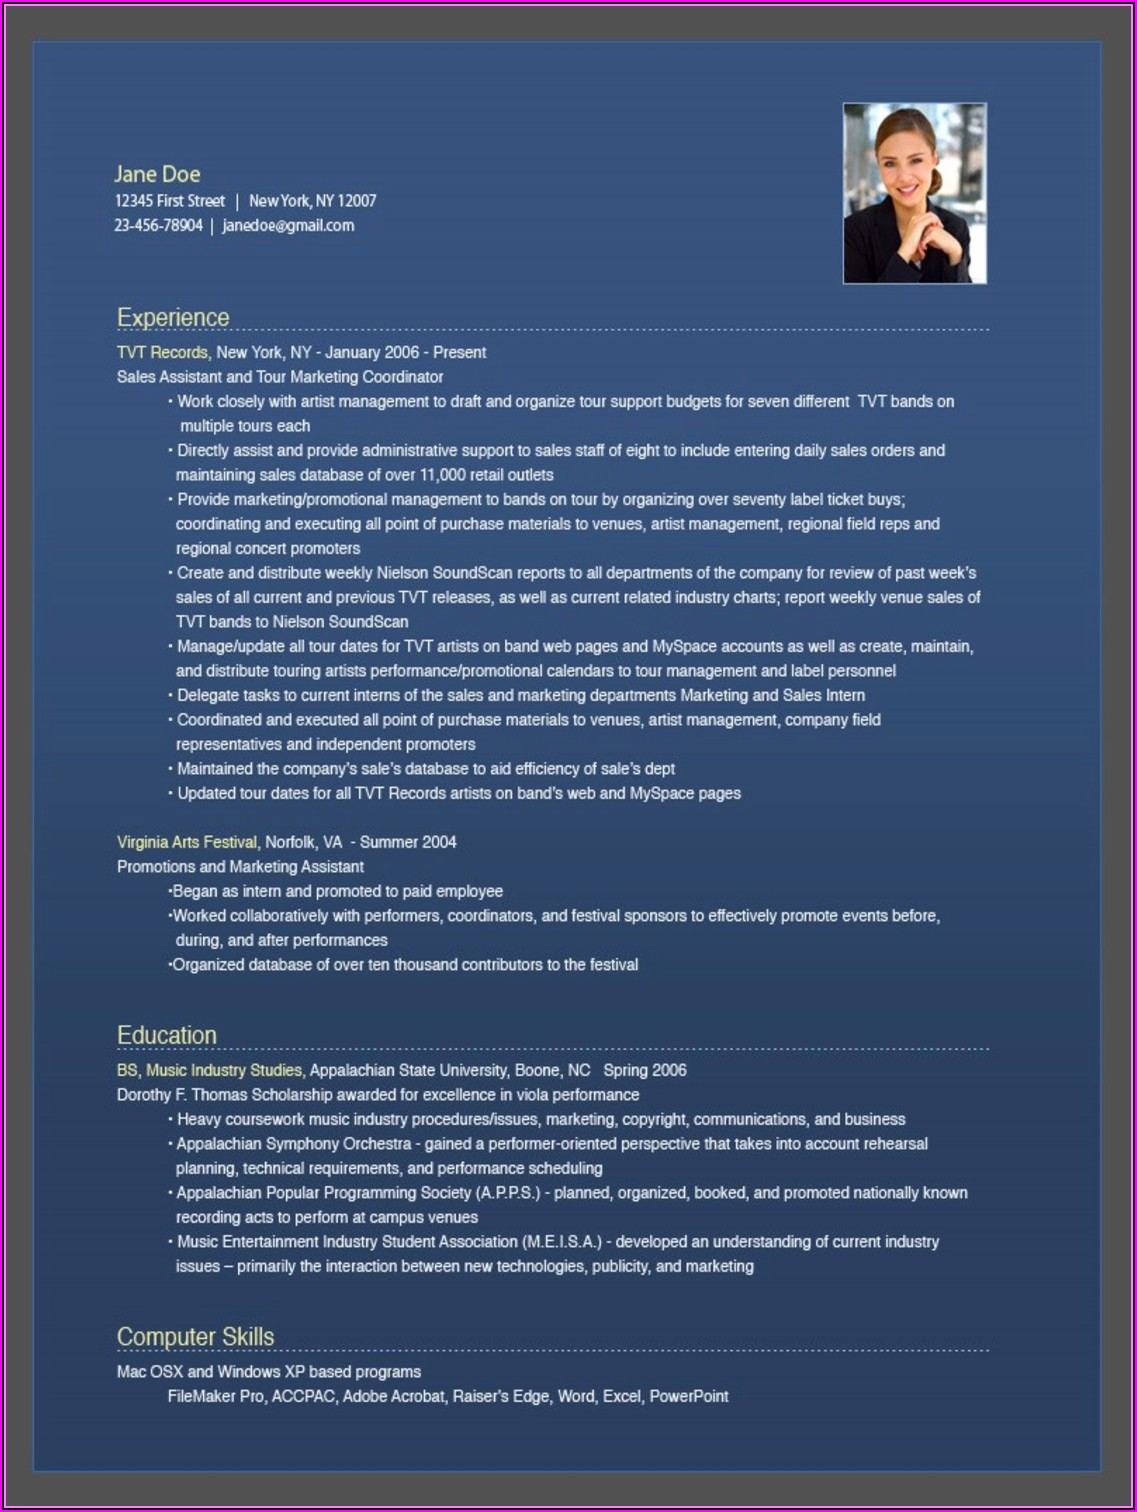 Online Resume Maker With Photo Free Download